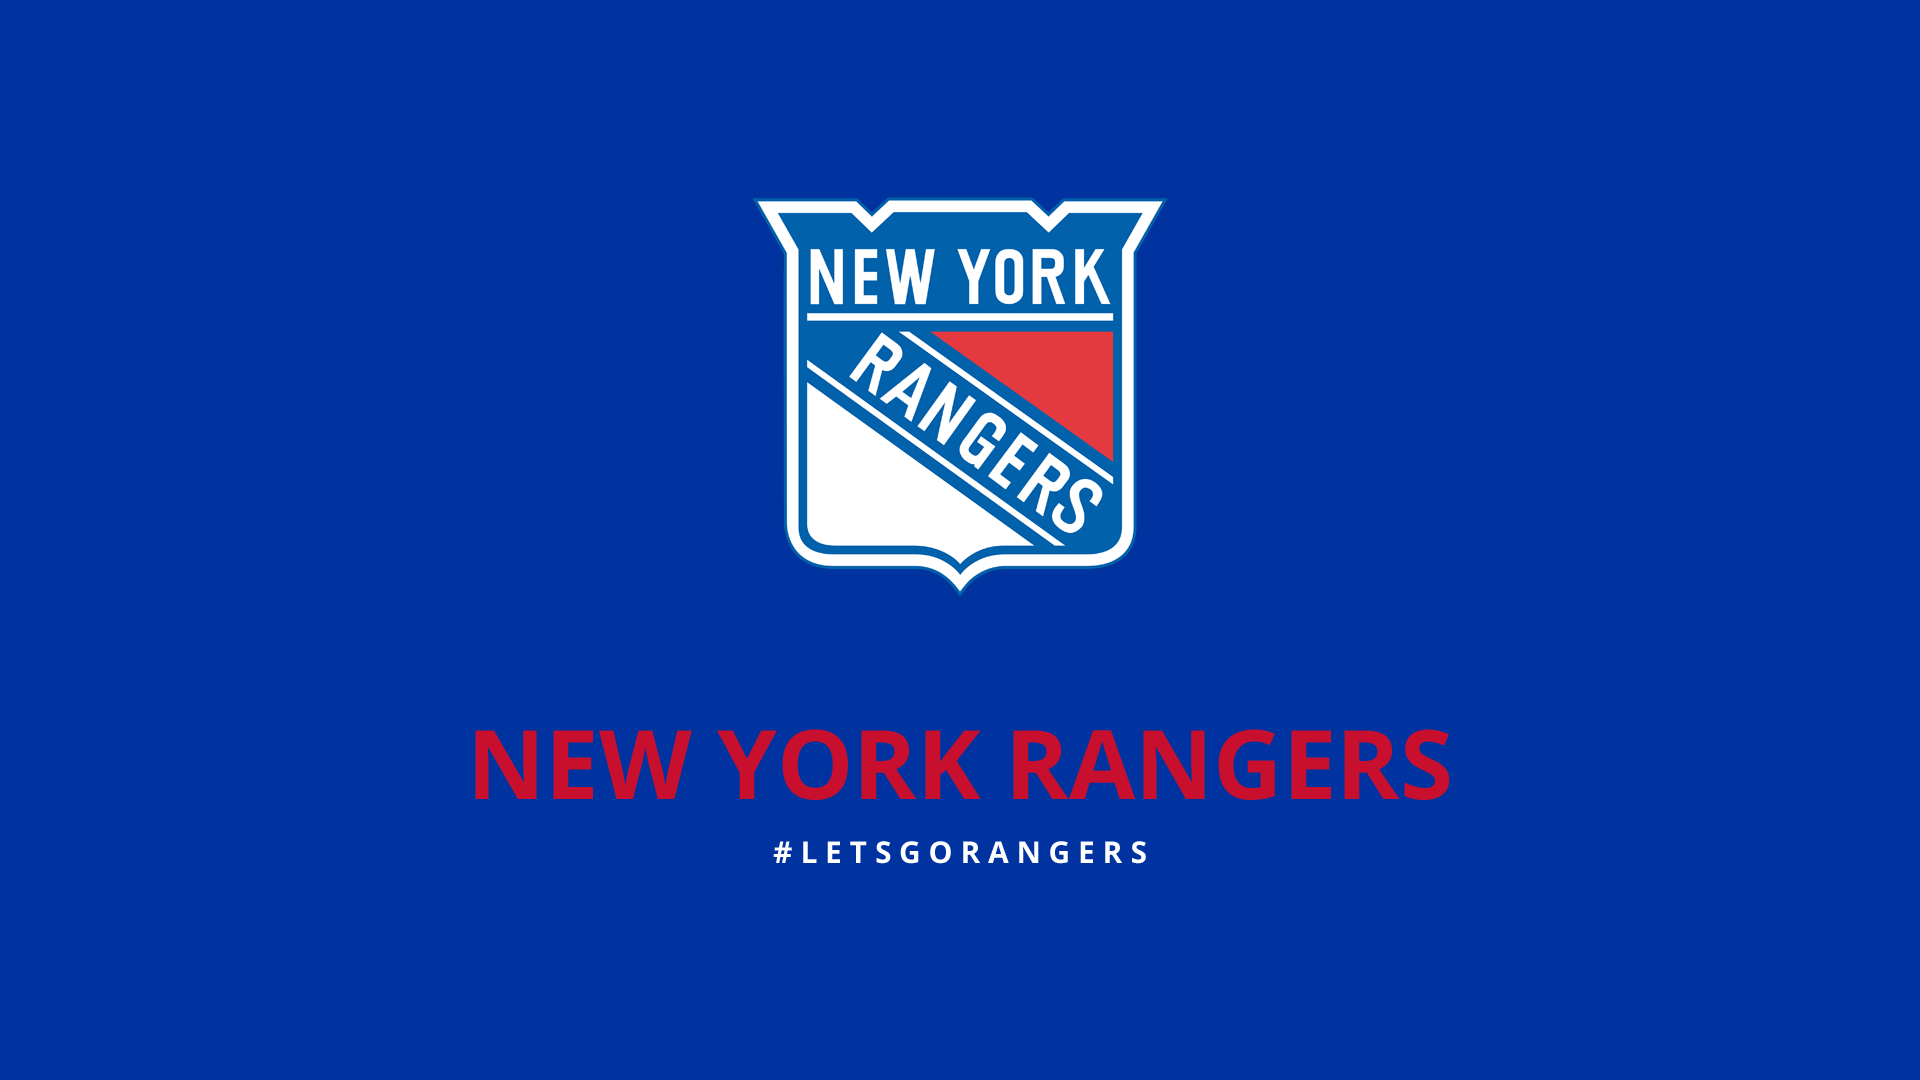 Widescreen Rangers Images | Foster Ciccone, 1920x1080 px